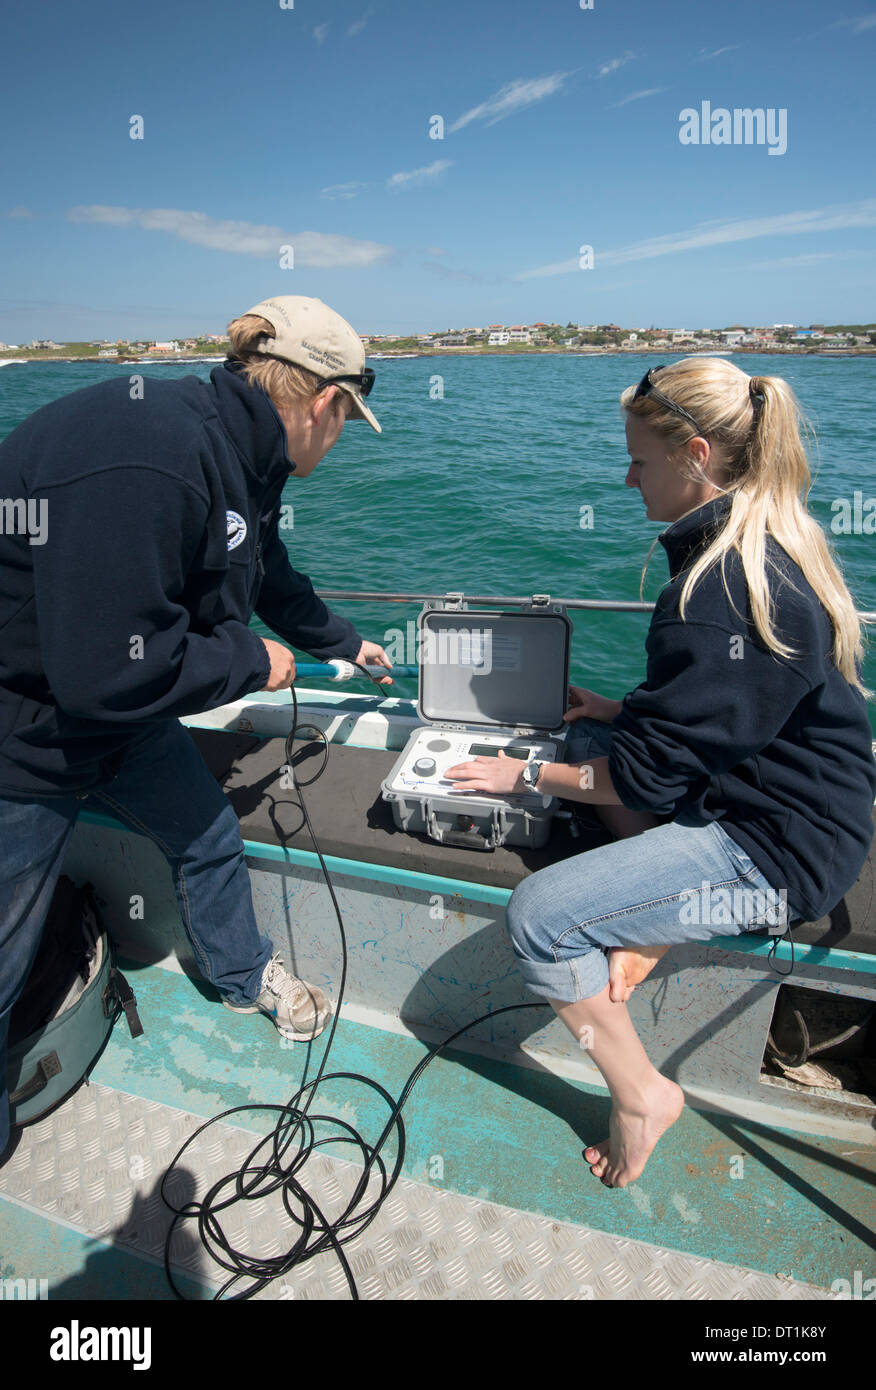 Scientists use hydrophone to track tagged great white shark behaviour, Gaansbai, Western Cape, South Africa Stock Photo